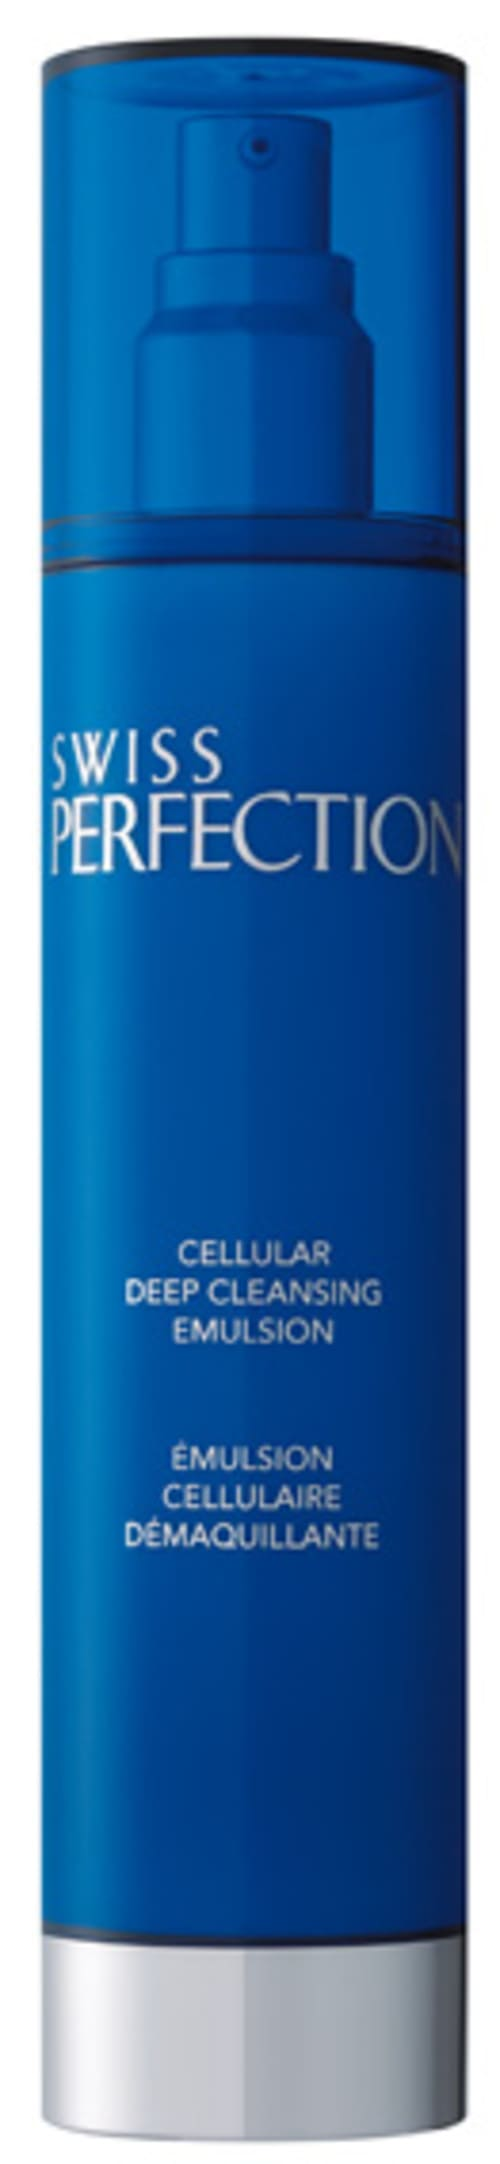 Cellular Perfect Prepare Swiss Perfection CELLULAR DEEP CLEANSING EMULSION Cellular Deep Cleansing Emulsion